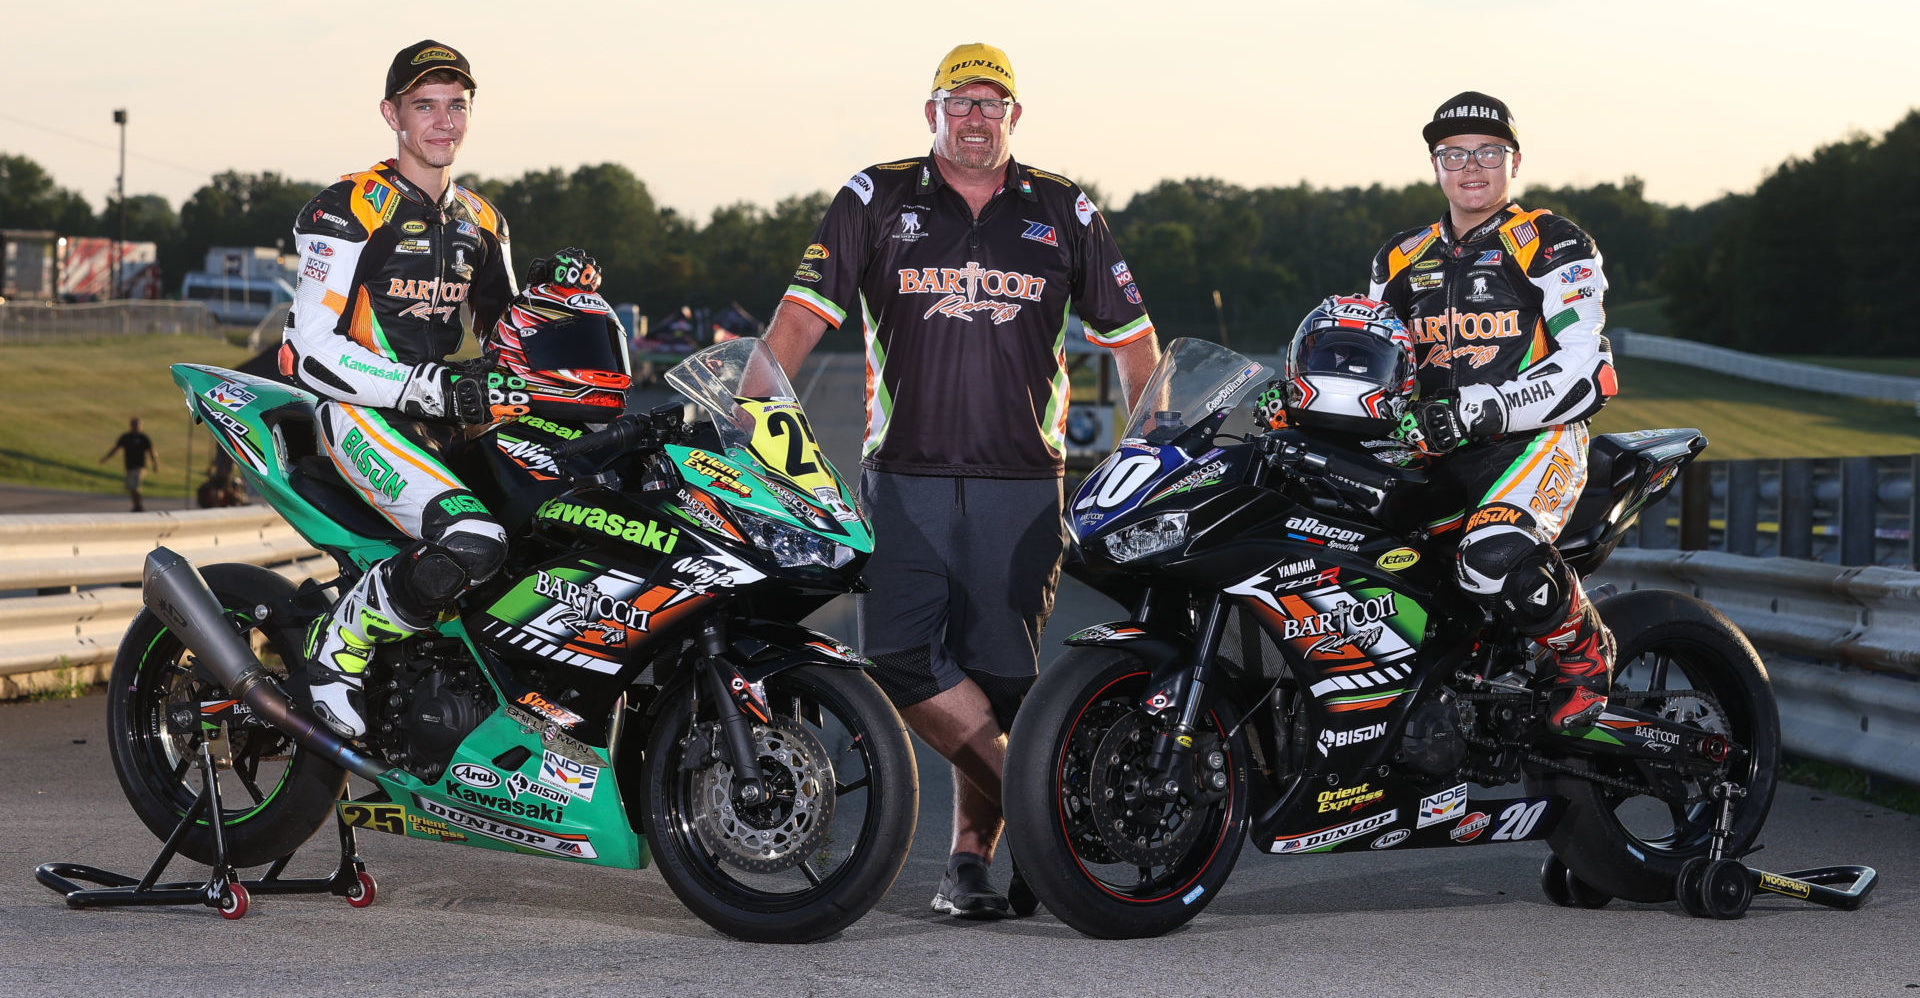 BARTCON Racing owner Colin Barton (center) with riders Dominic Doyle (left) and Cooper McDonald (right). Photo by Brian J. Nelson.